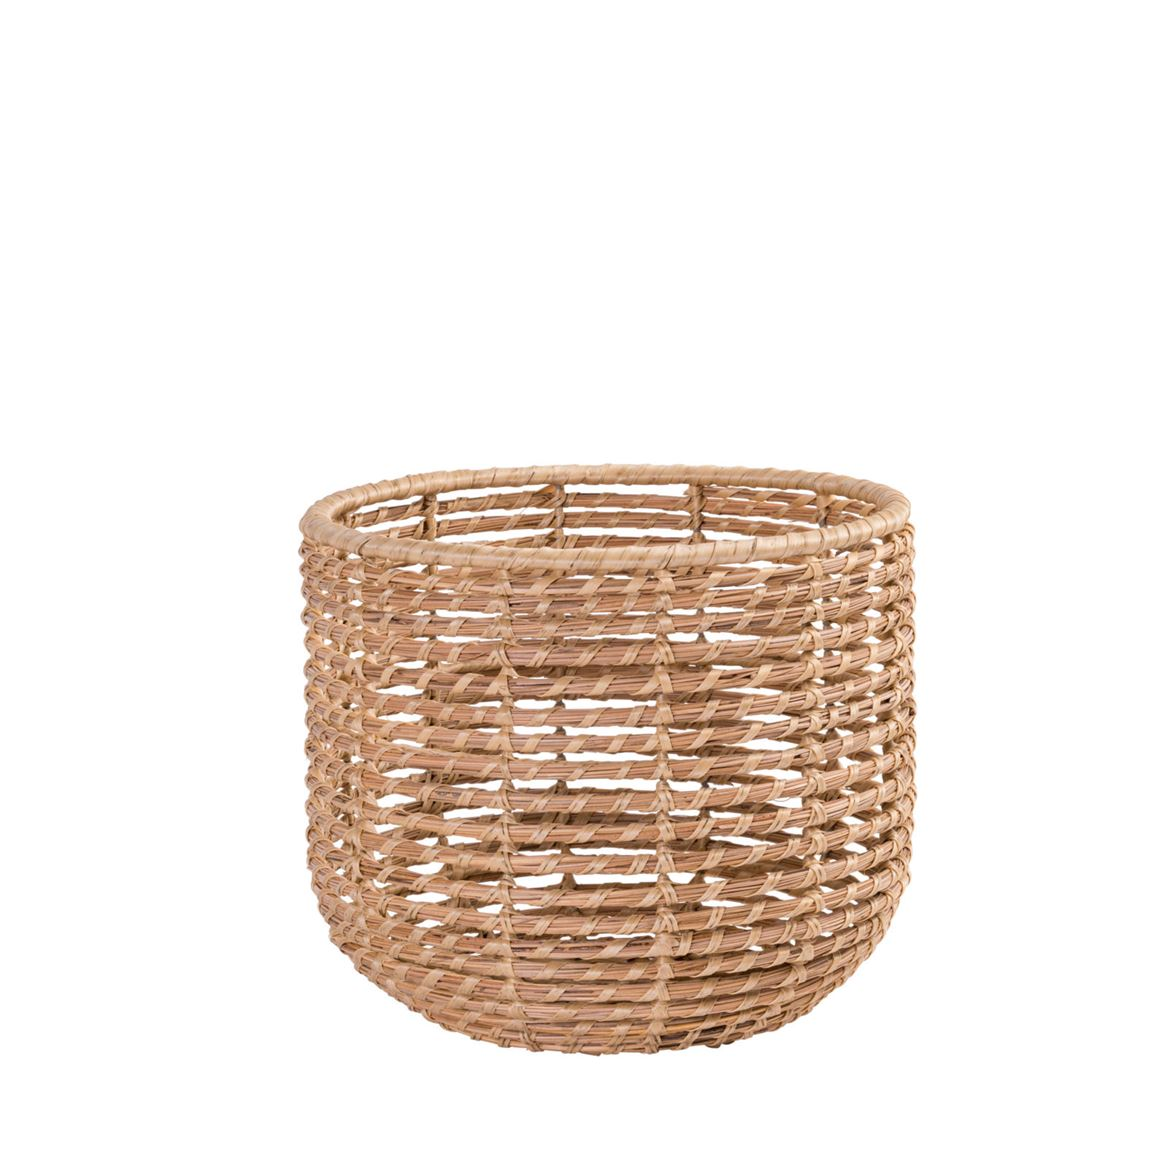 ALABAMA COCO Mand in- & outdoor naturel H 29 cm; Ø 34 cm_alabama-coco-mand-in---outdoor-naturel-h-29-cm;-ø-34-cm